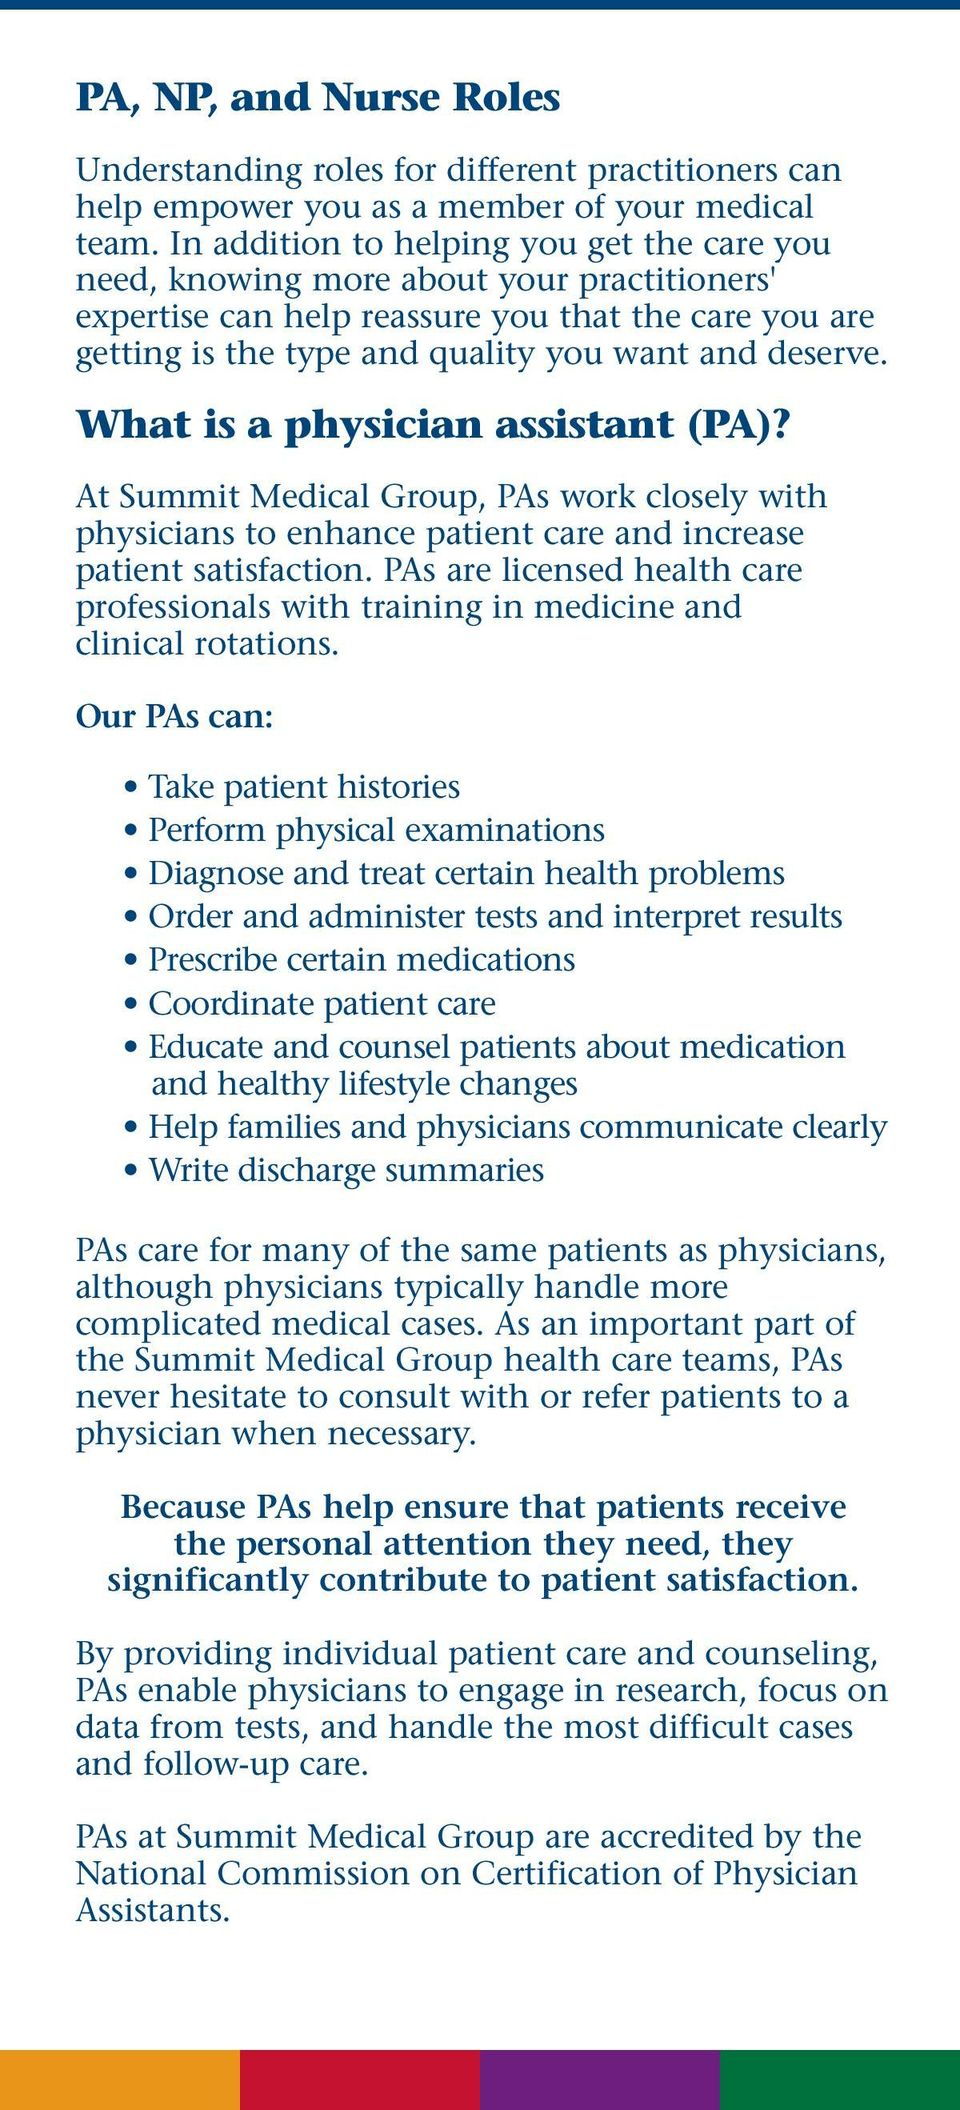 What is a physician assistant (PA)? At Summit Medical Group, PAs work closely with physicians to enhance patient care and increase patient satisfaction.